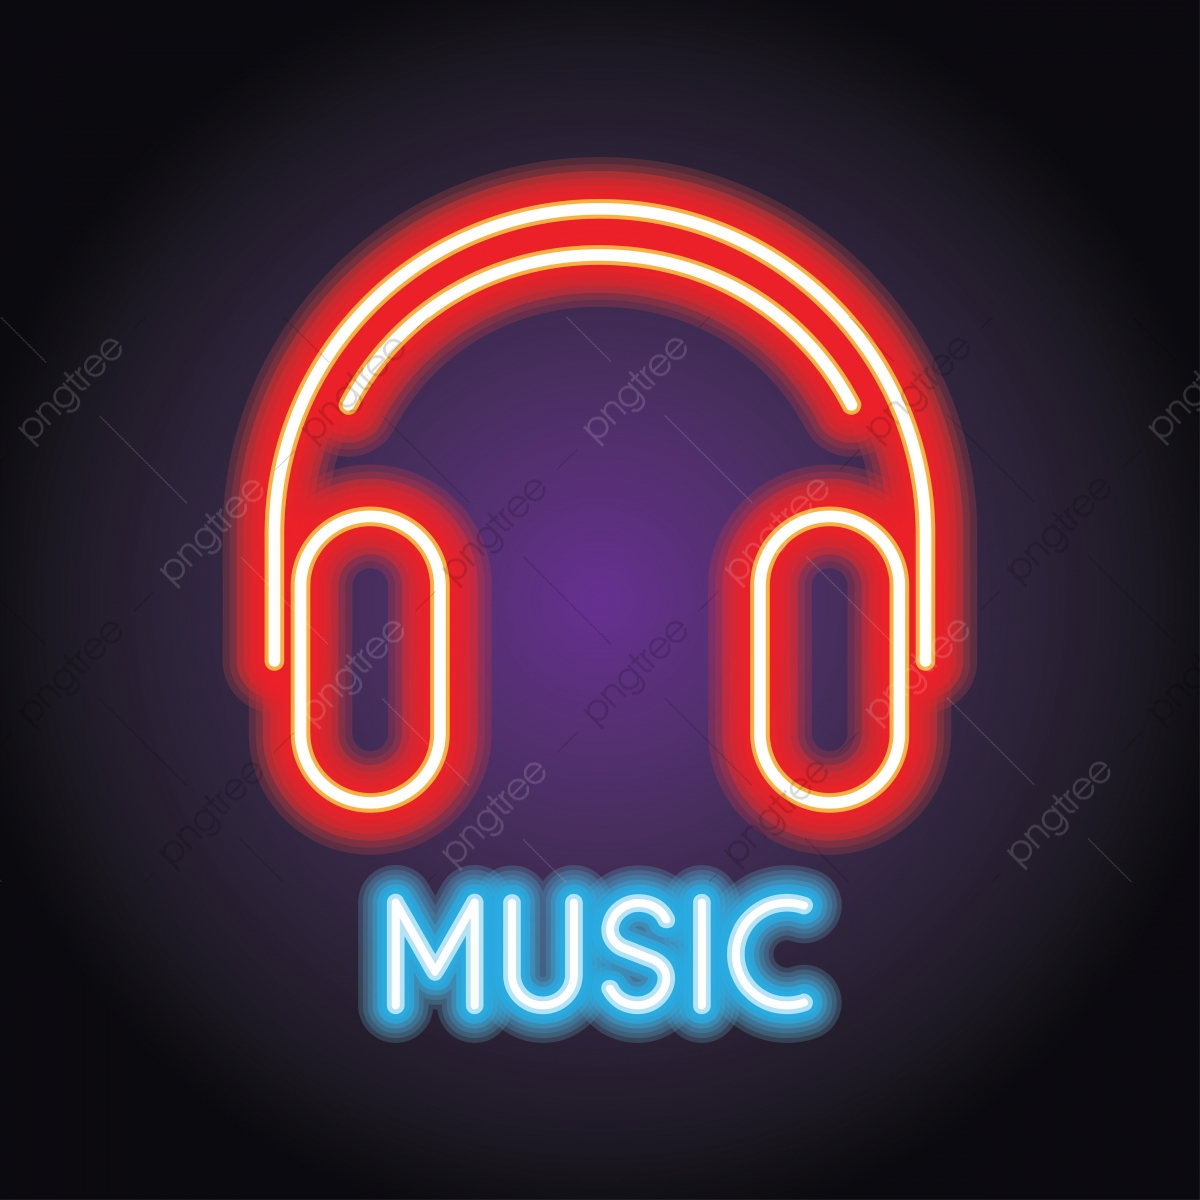 Music Logo Png Vector Psd And Clipart With Transparent Background For Free Download Pngtree